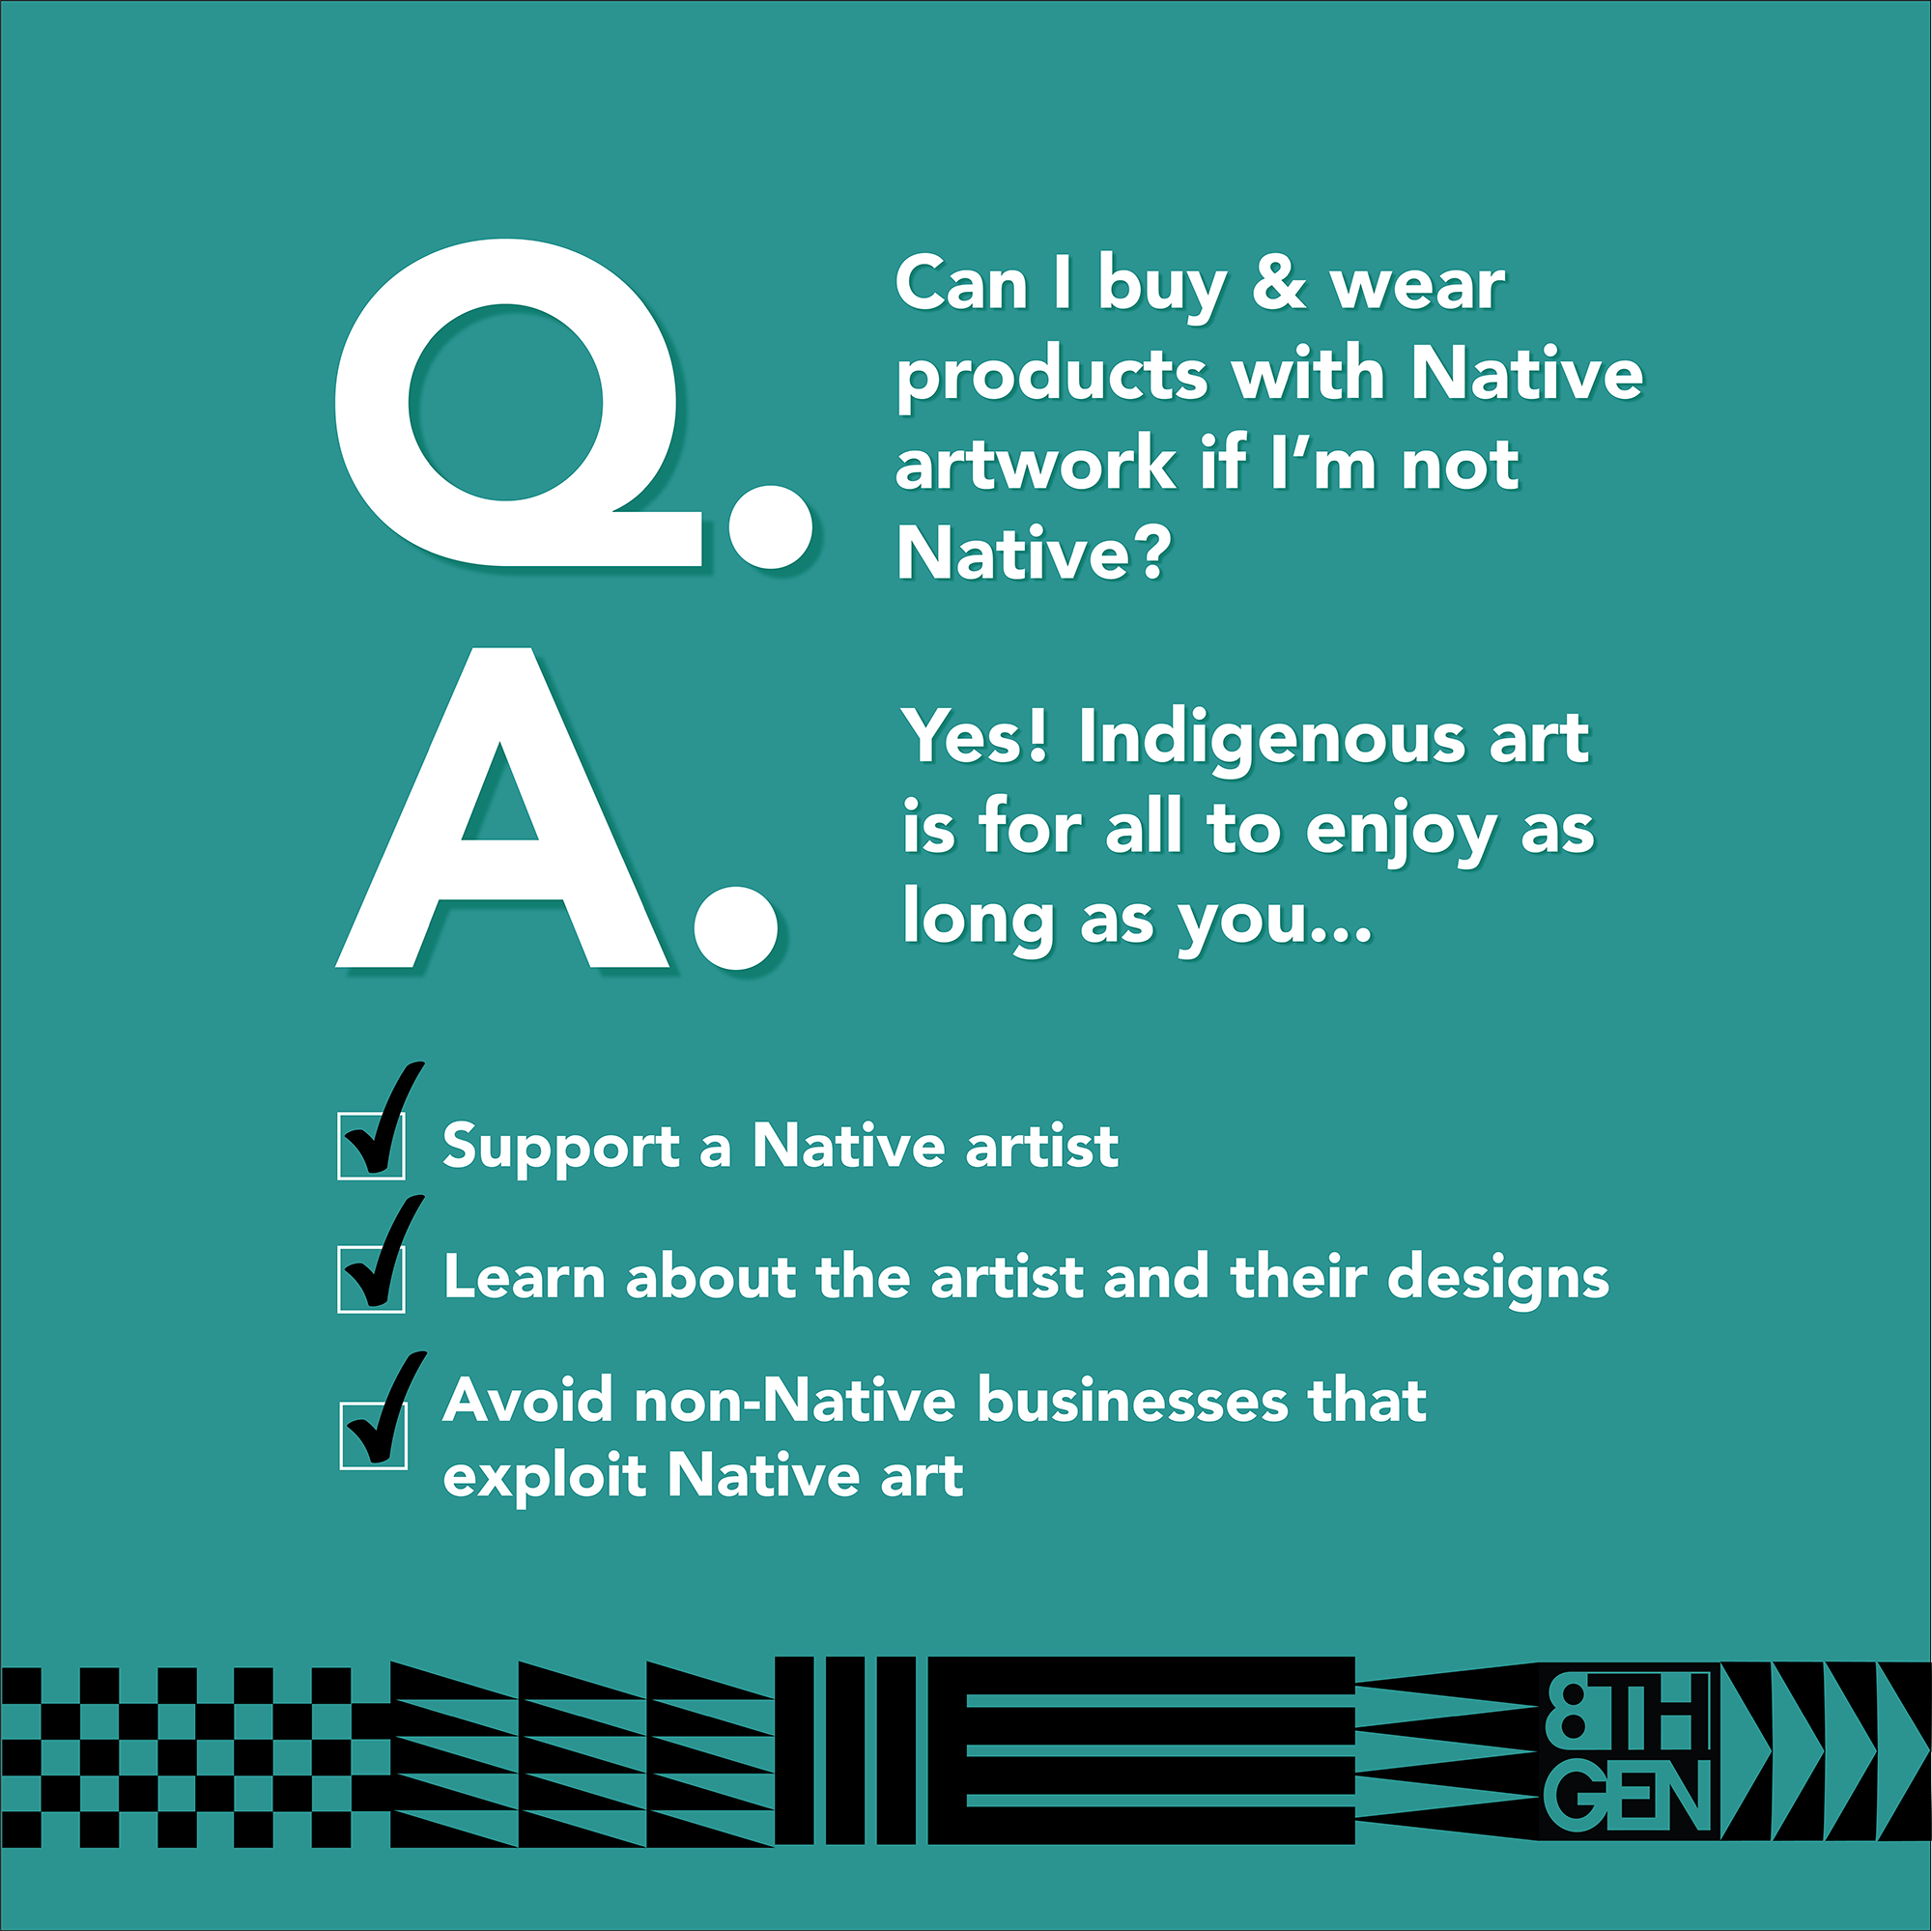 Can-I-buy-and-wear-products-with-Native-artwork-if-I'm-not-Native?-infographic-in-teal-with-white-and-black-lettering-and-Coast-Salish-pattern